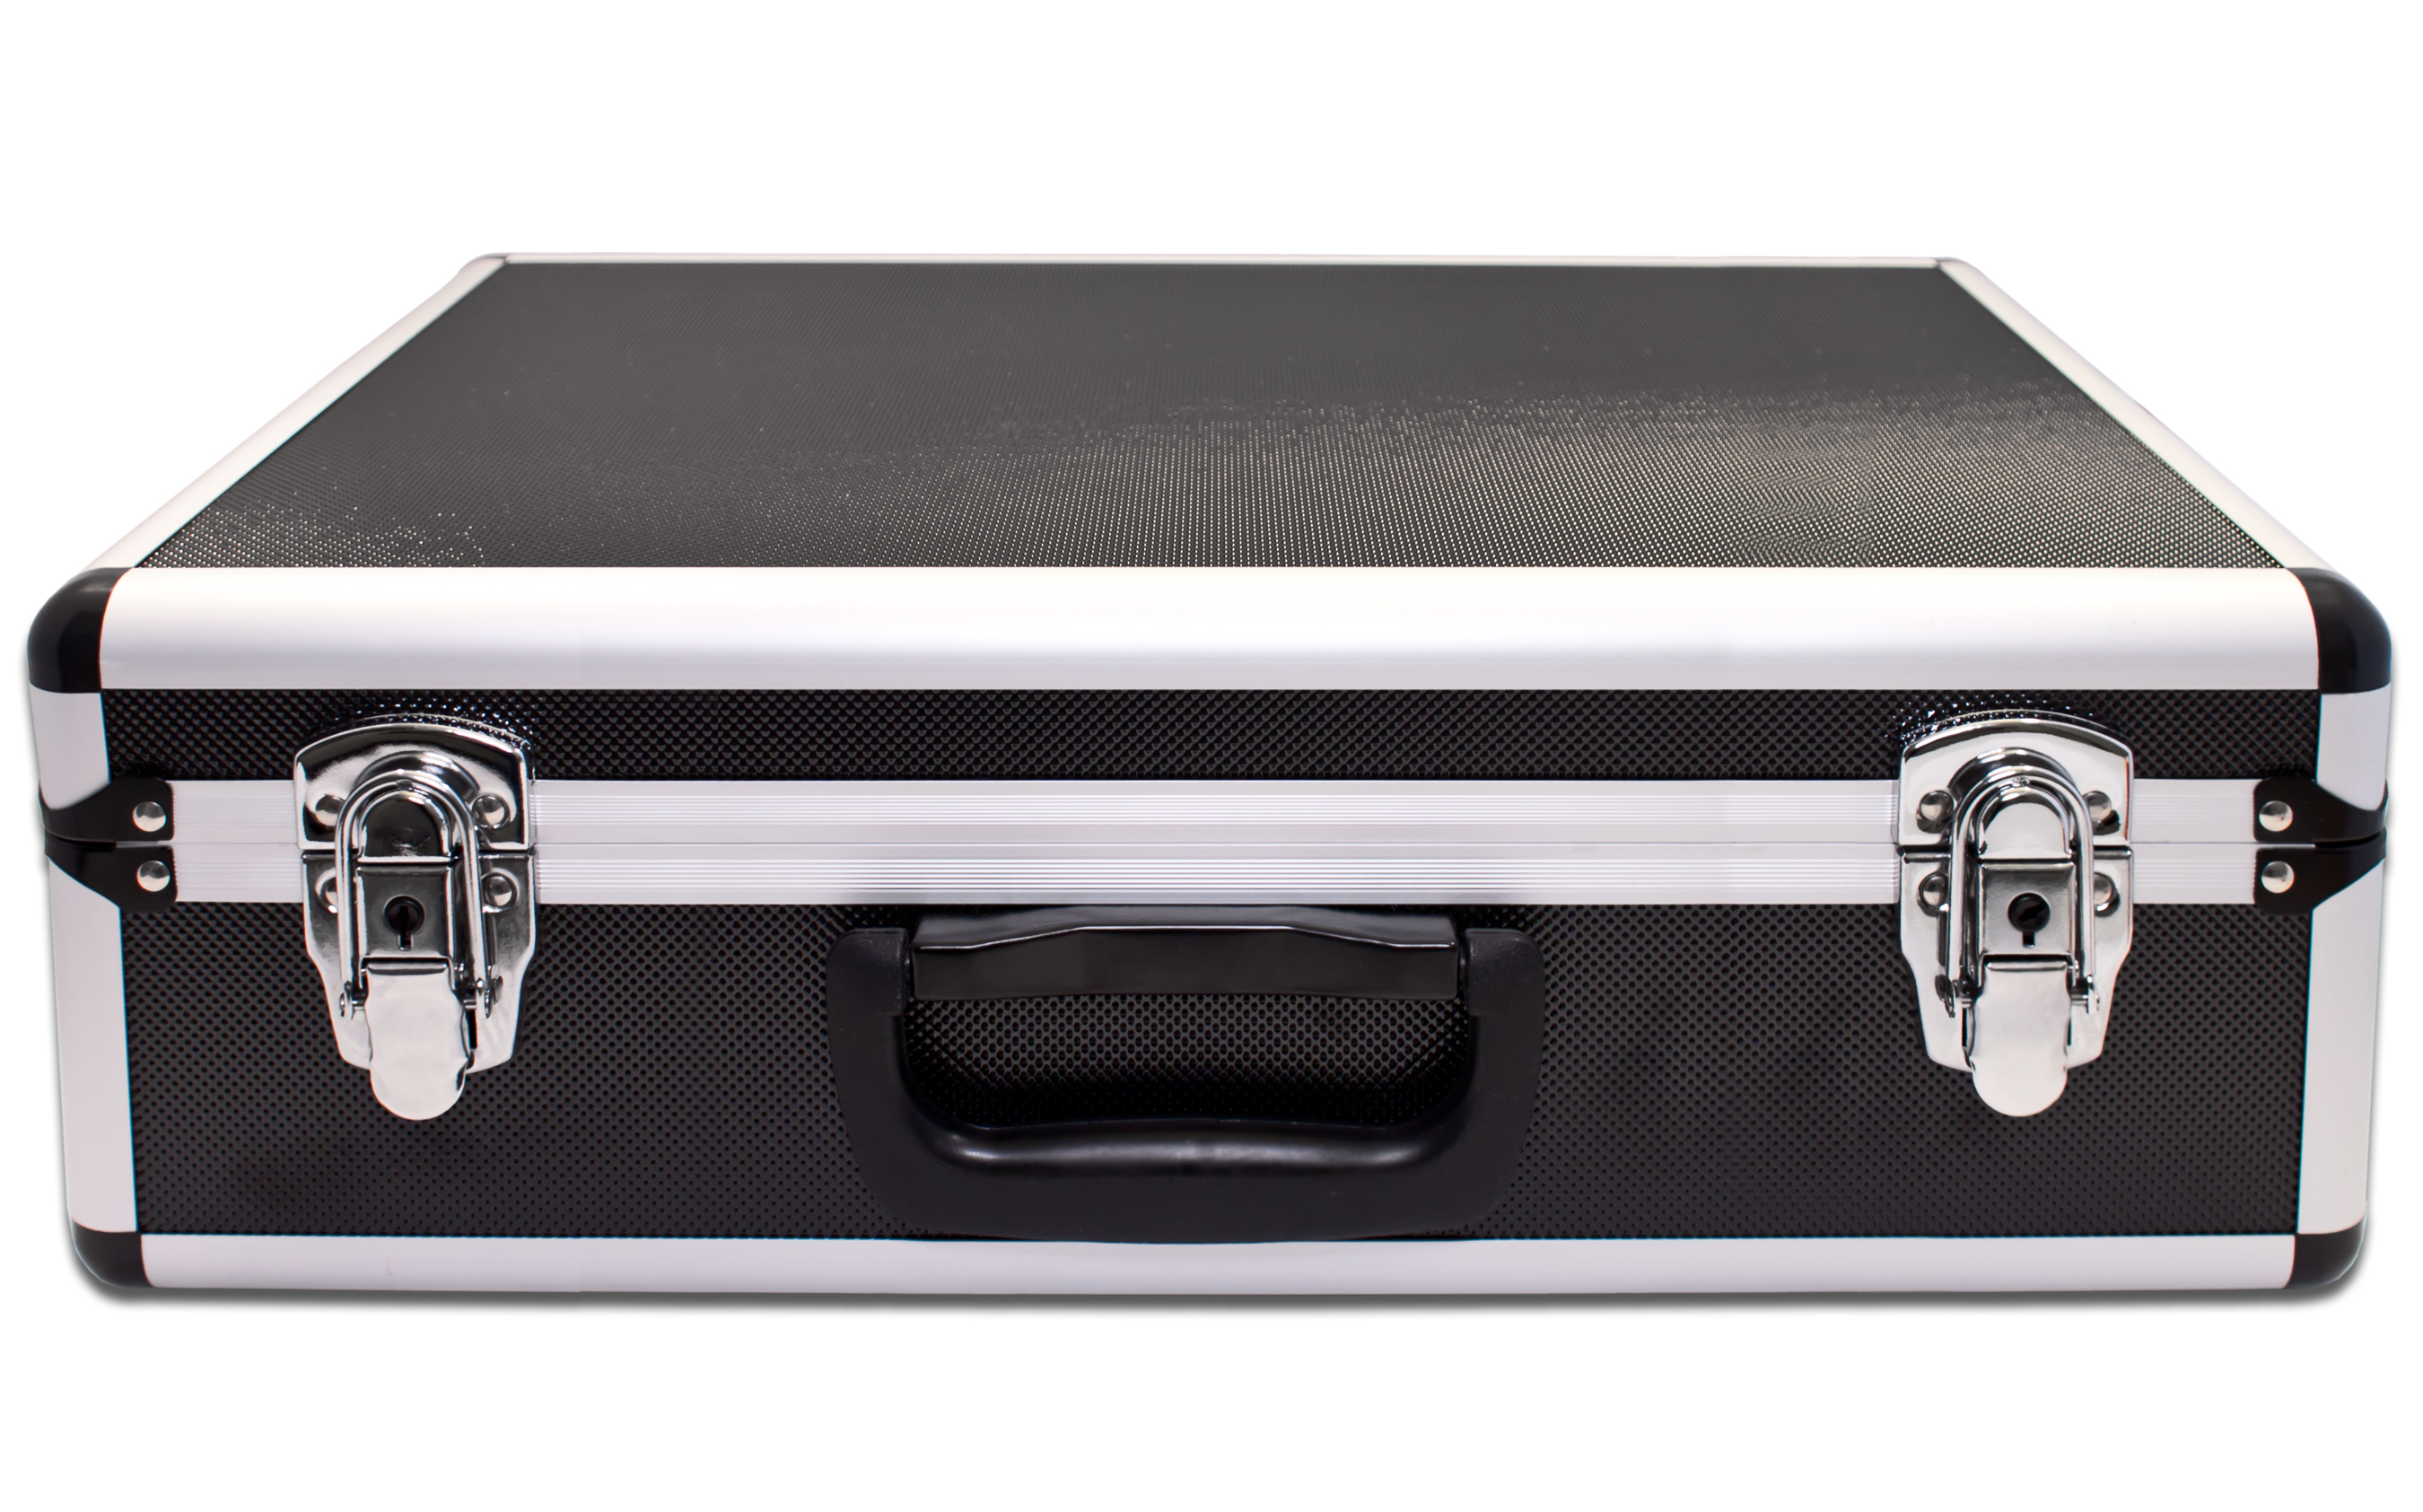 «PeakTech® P 7310» Carrying Case for Measurement Instruments